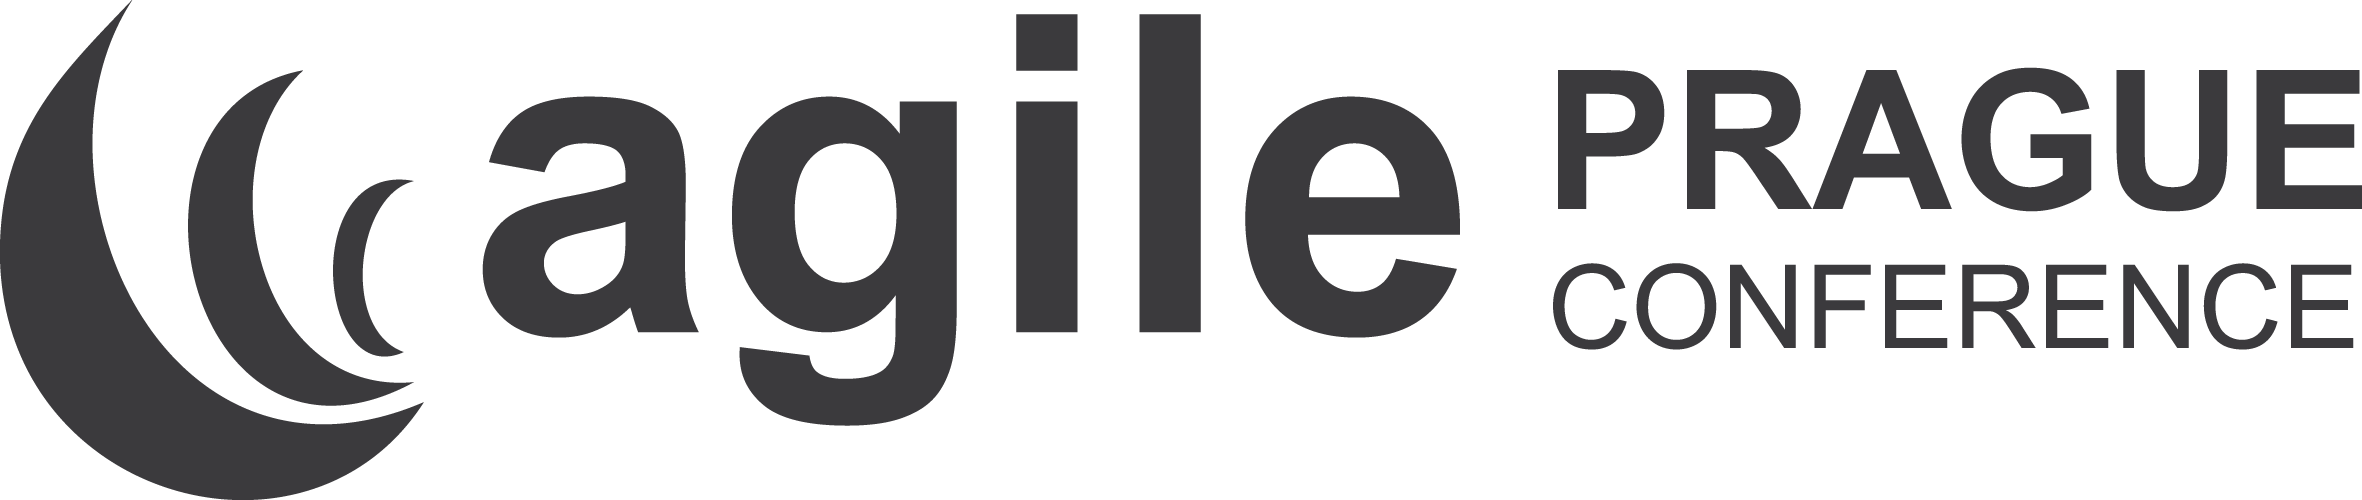 Agile Prague logo